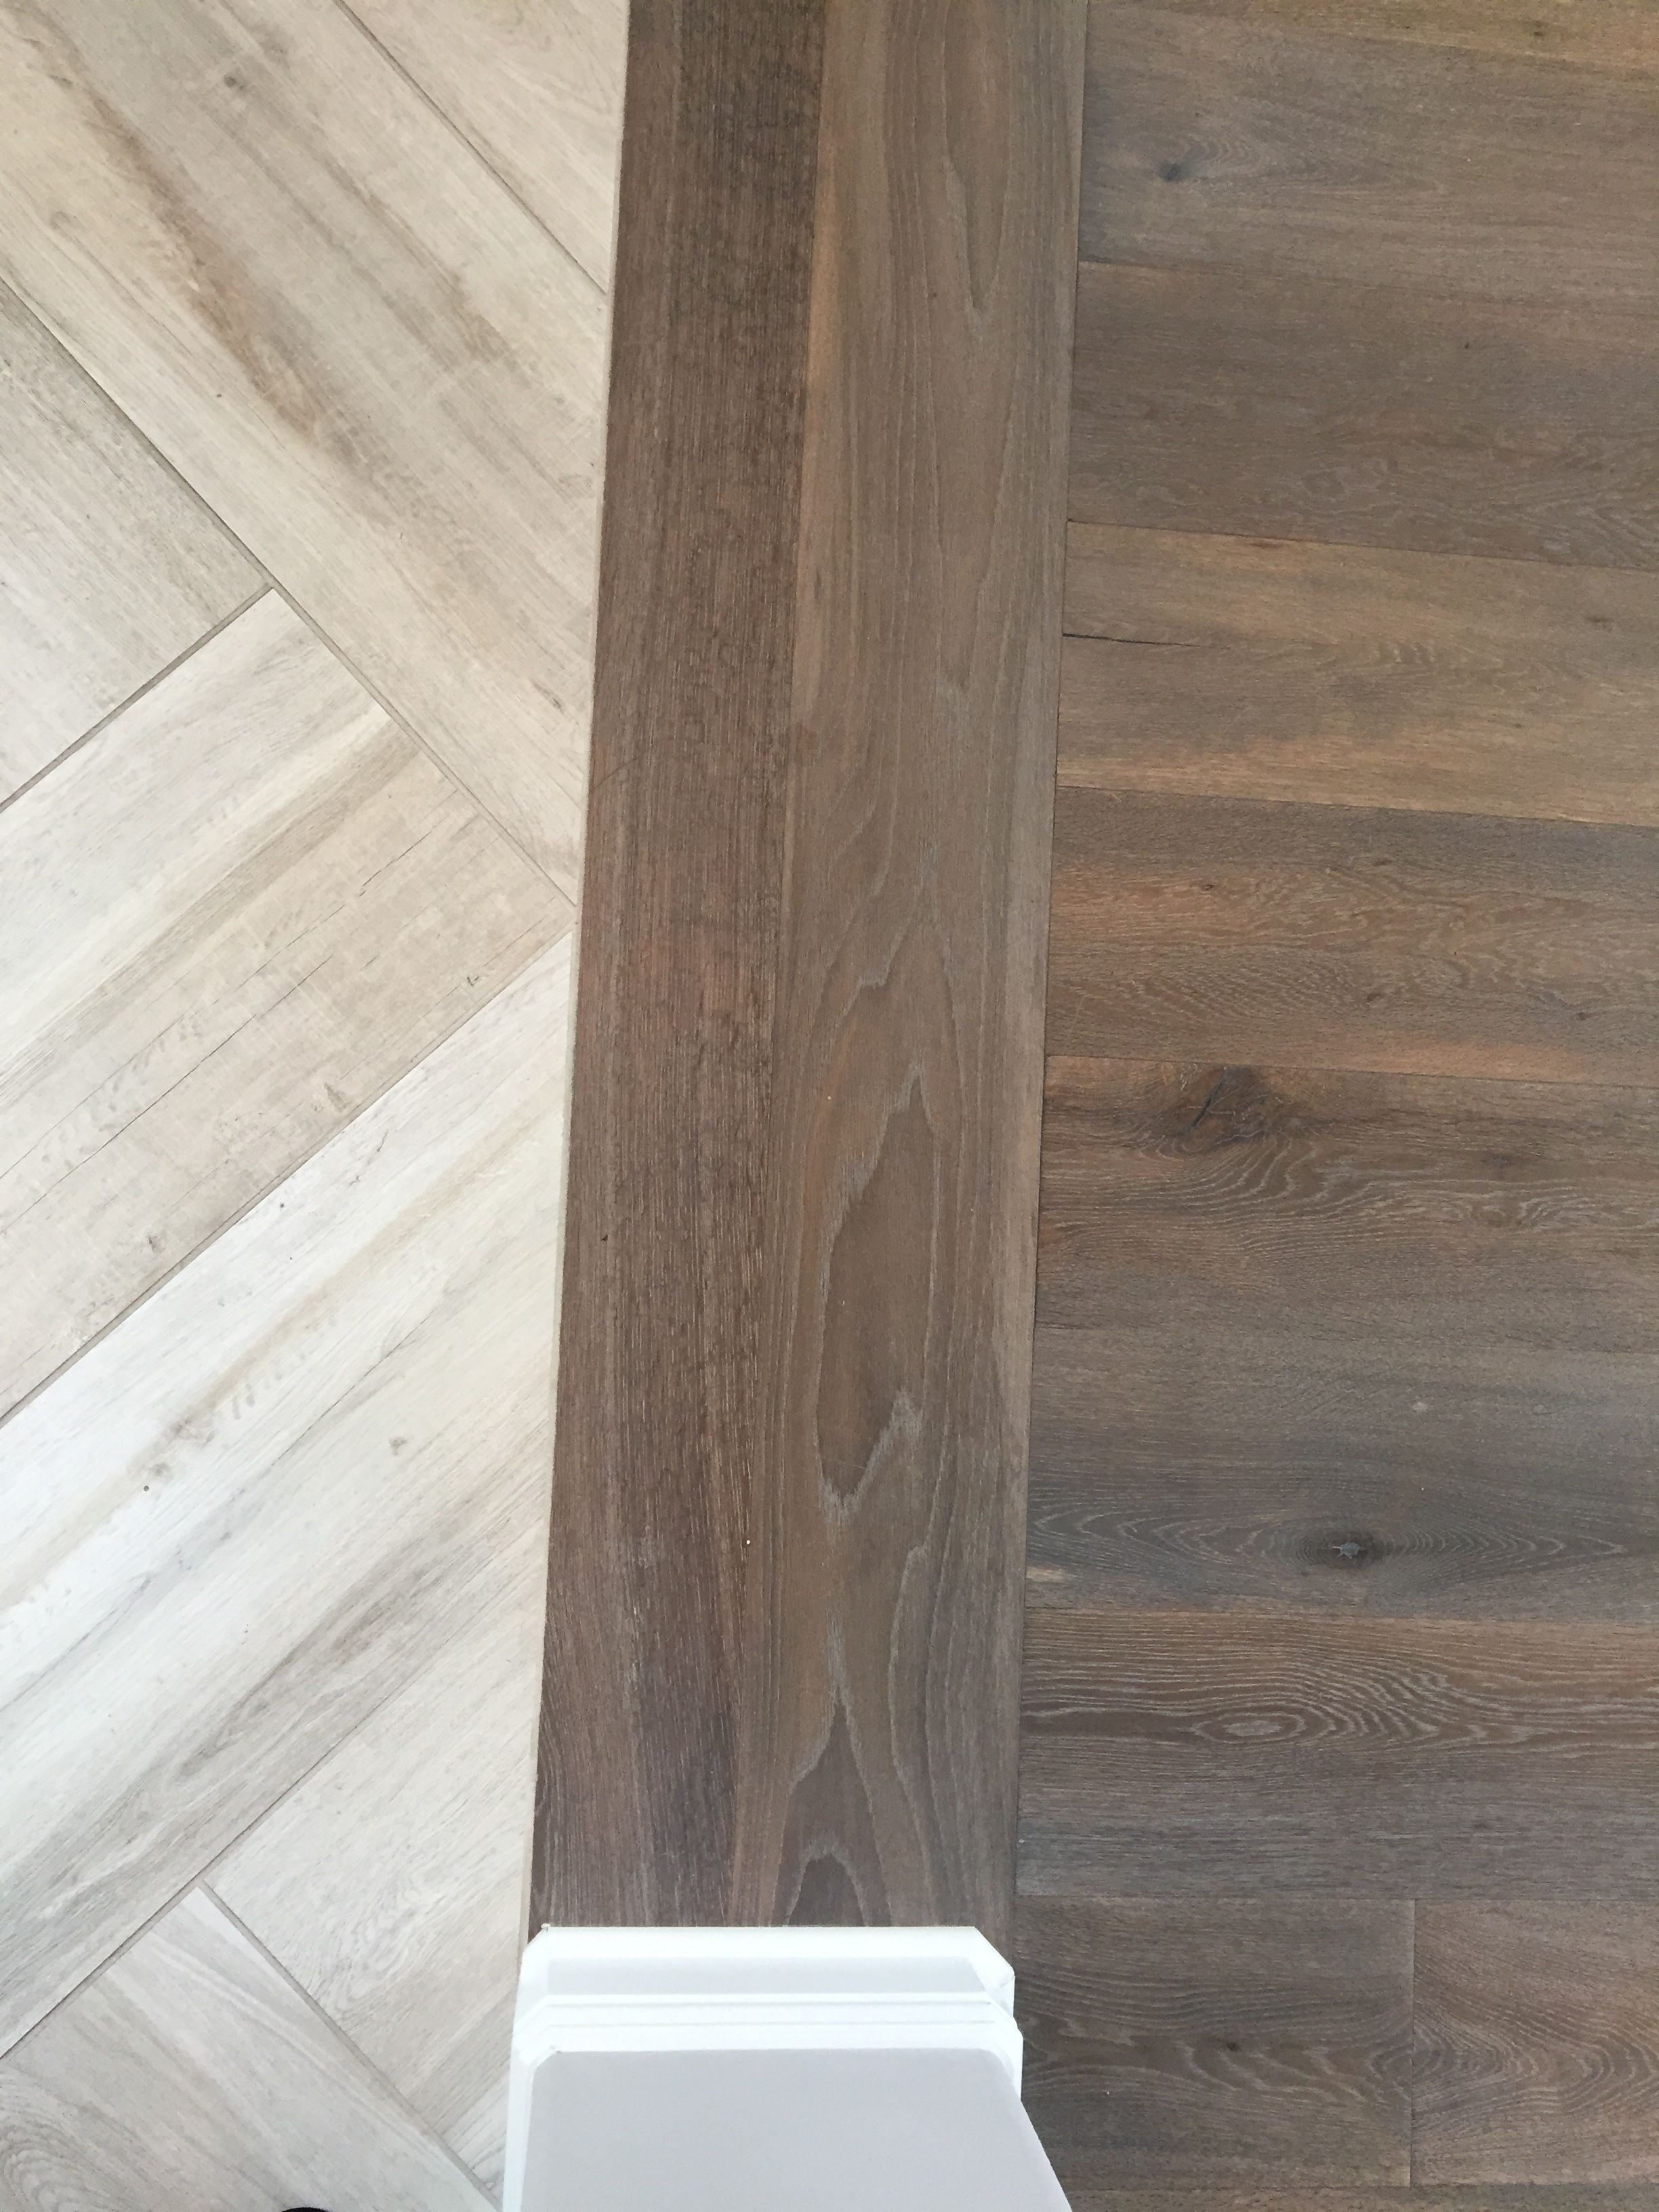 wood laminate flooring vs hardwood of faux wood laminate countertops crayonroom com throughout faux wood laminate countertops lovely faux wood tile grey wood look tile bathroom od look tile